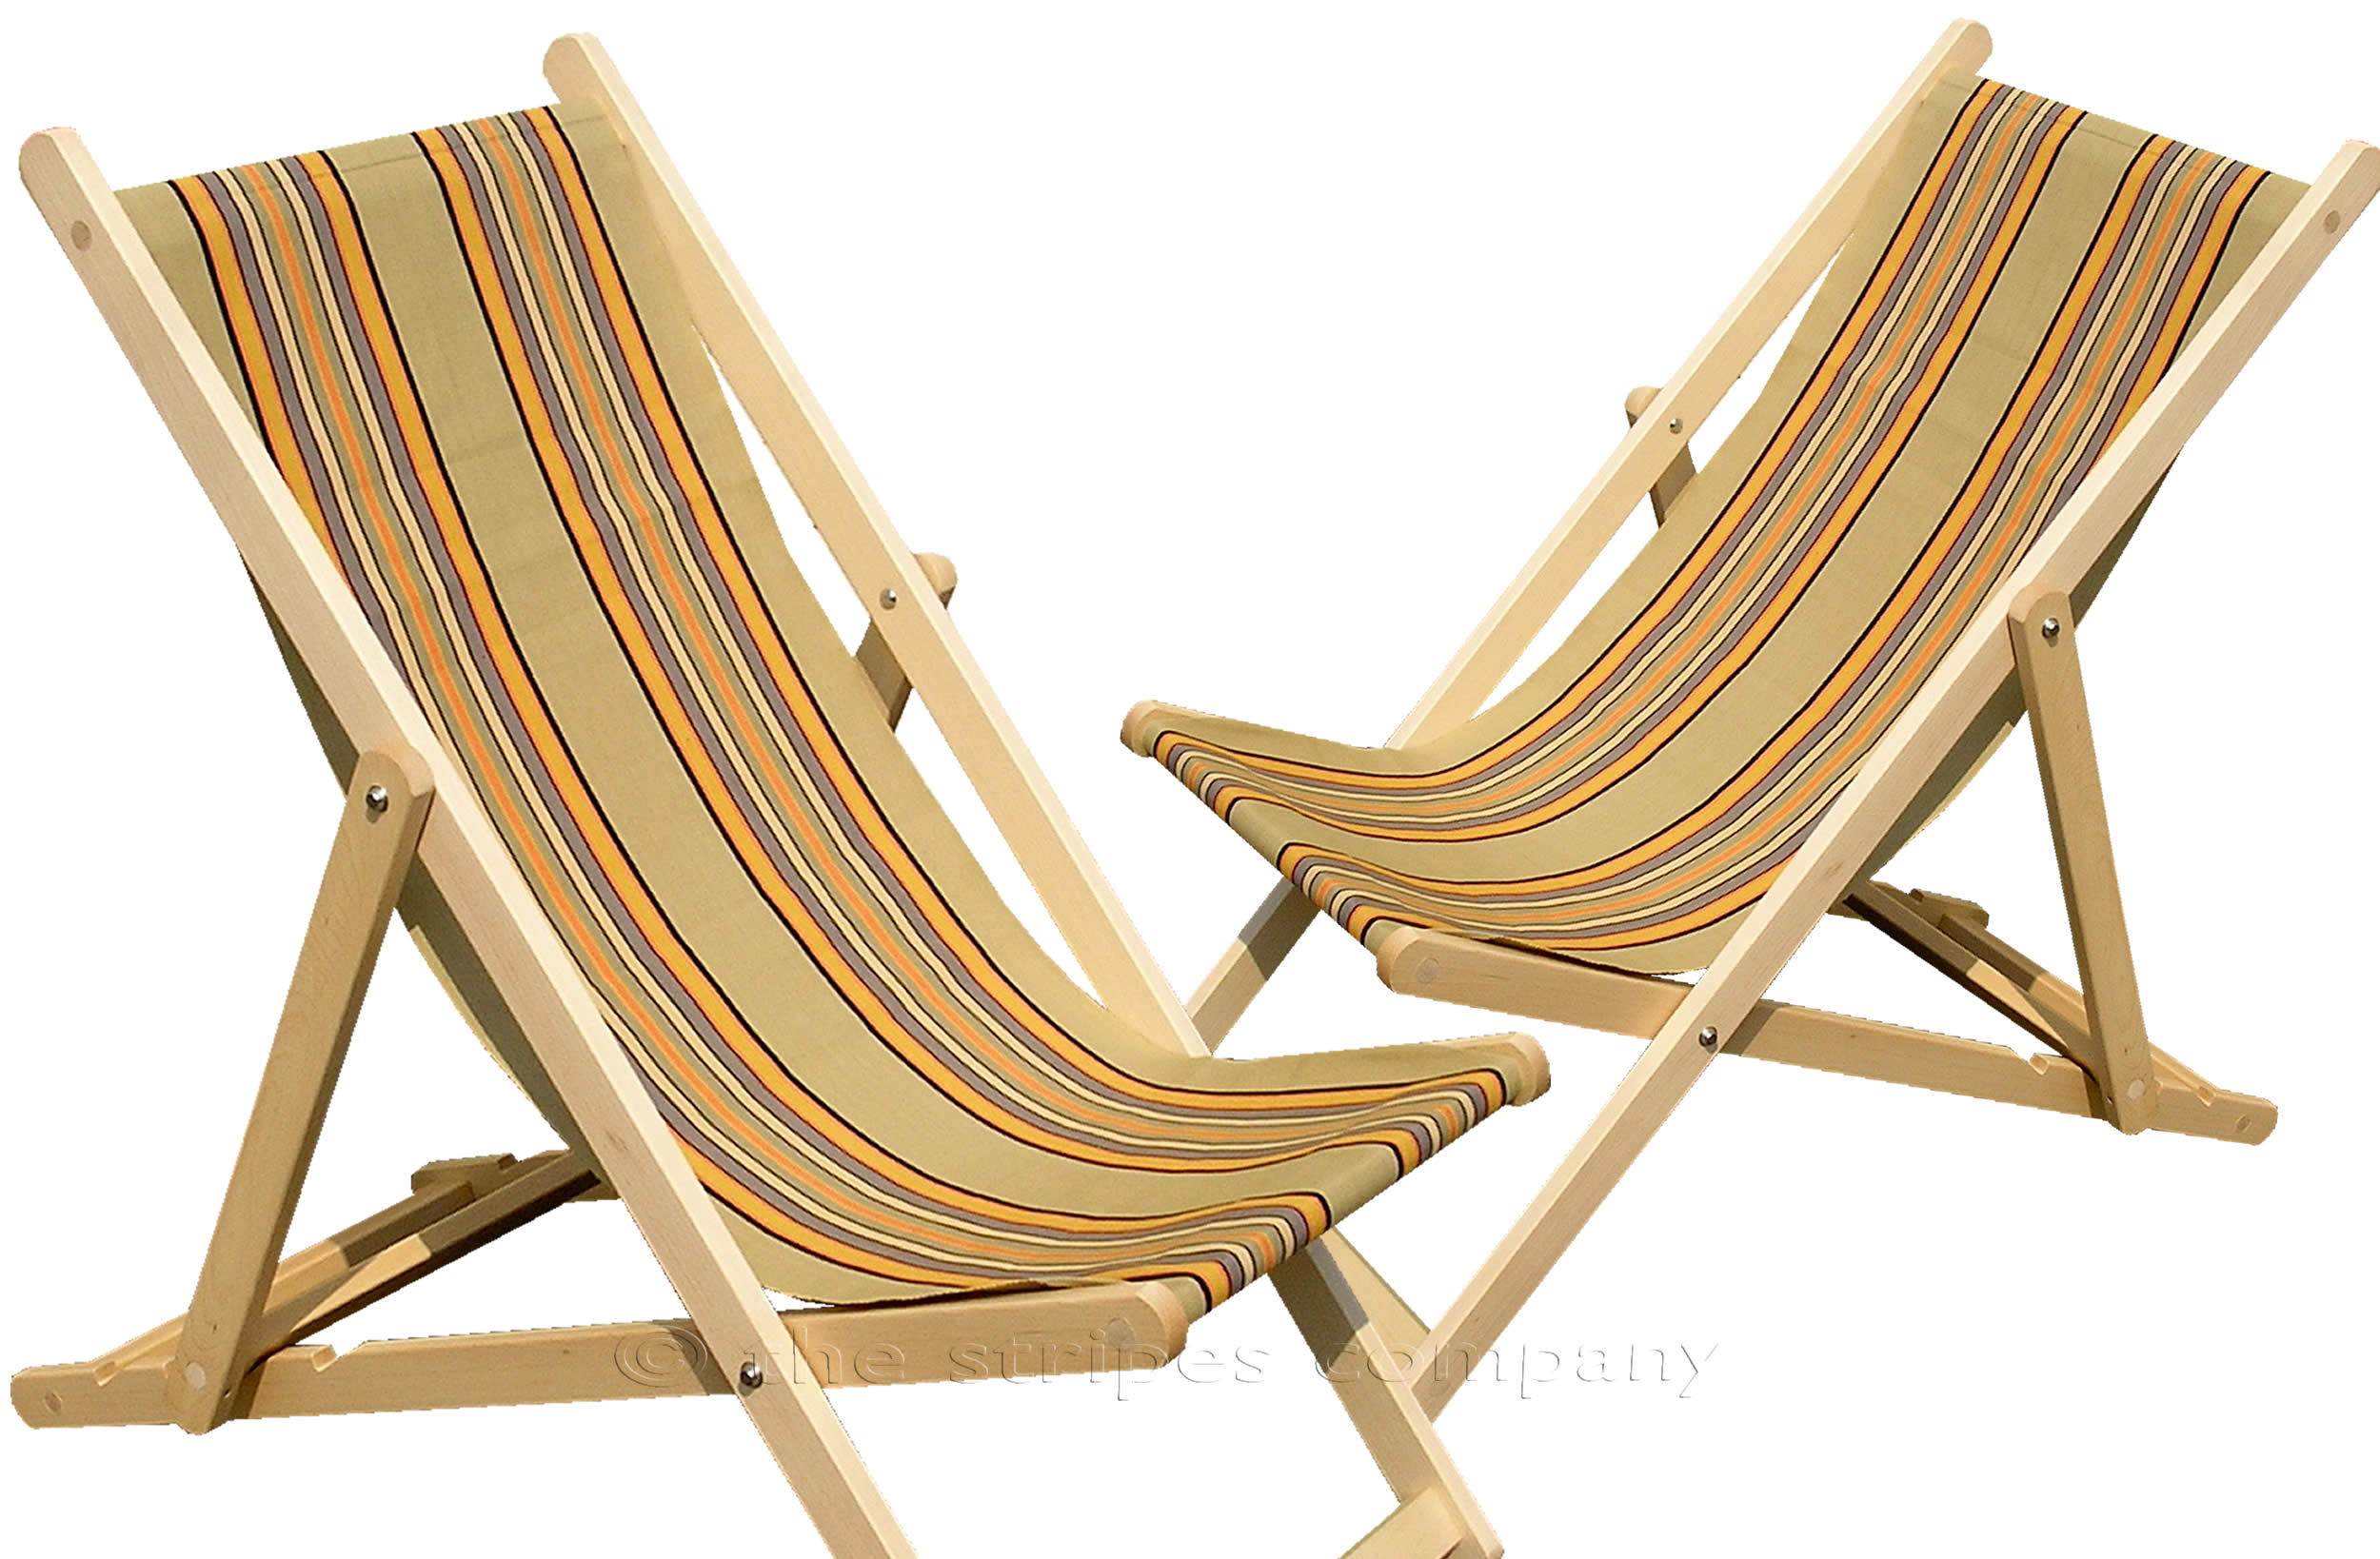 Khaki Deckchairs | Wooden Folding Deck Chairs Kickball Stripes